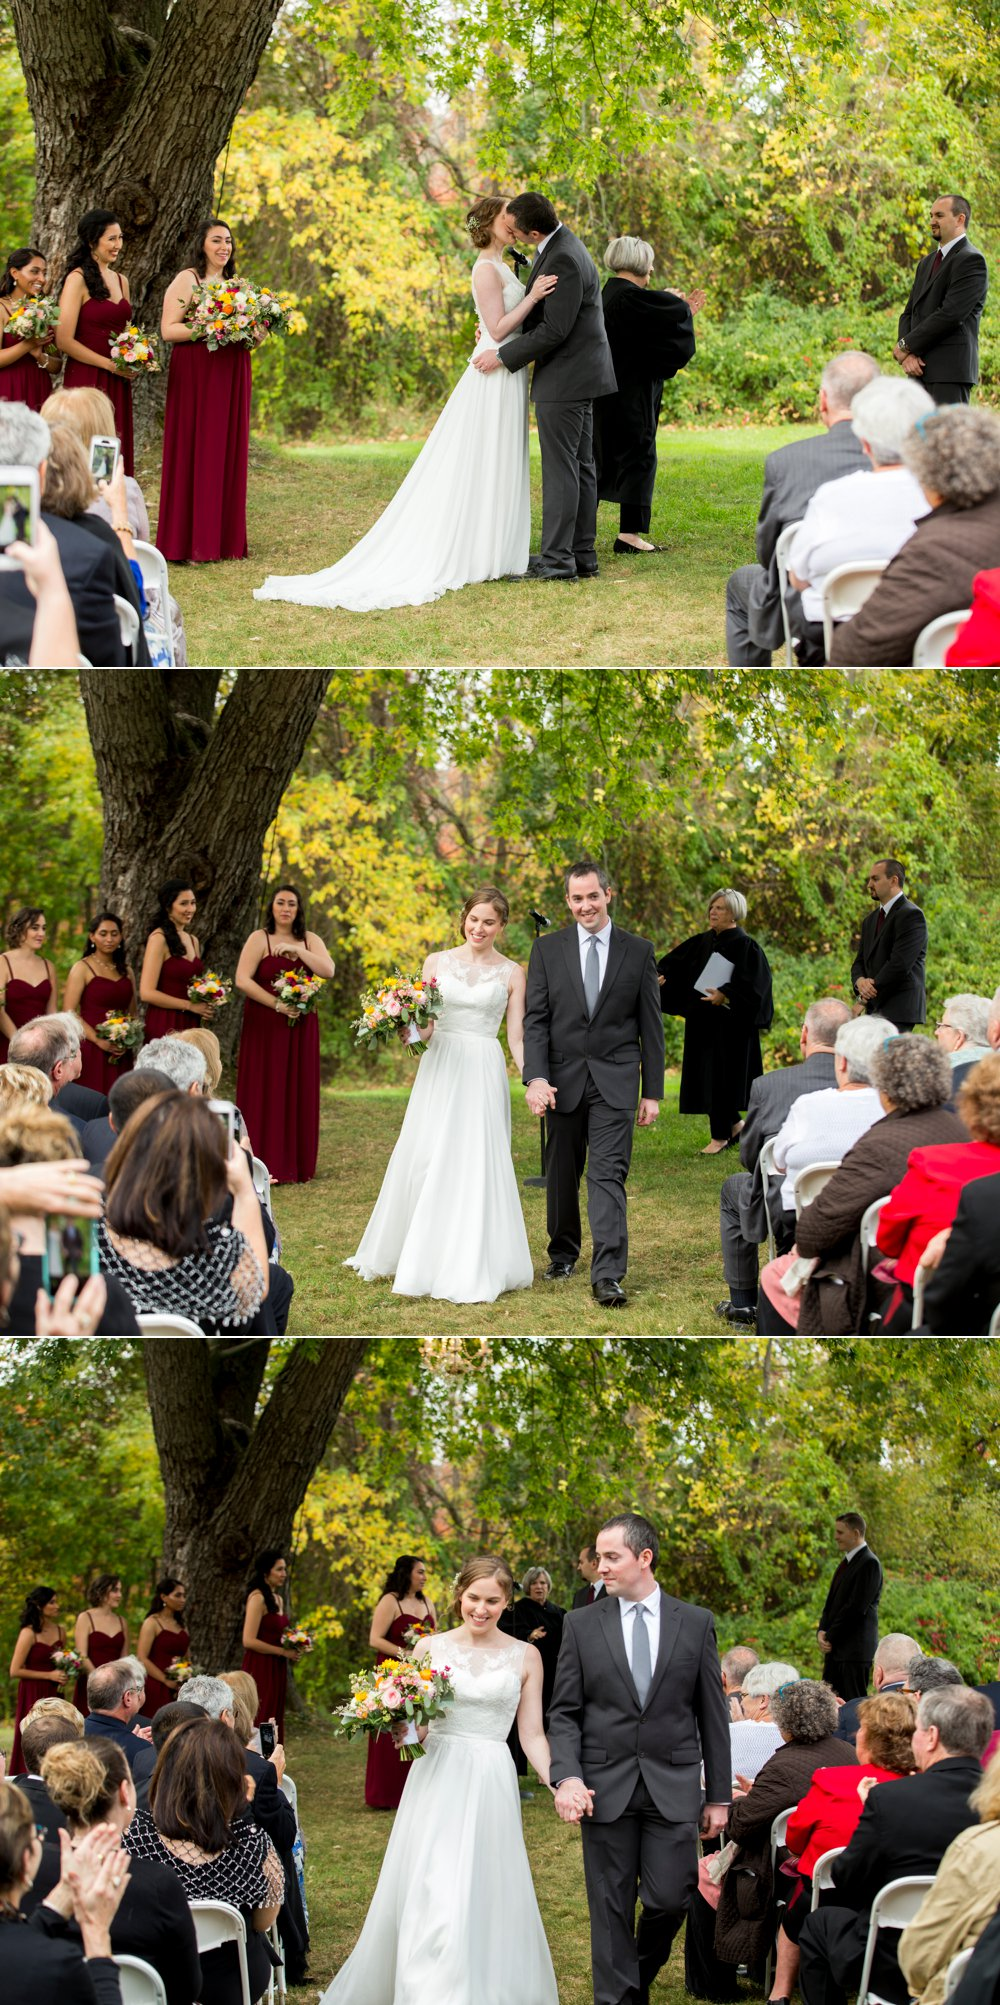 SomerbyJonesPhotography_HellenicCenterWedding_TheHellenicCenter_0025.jpg